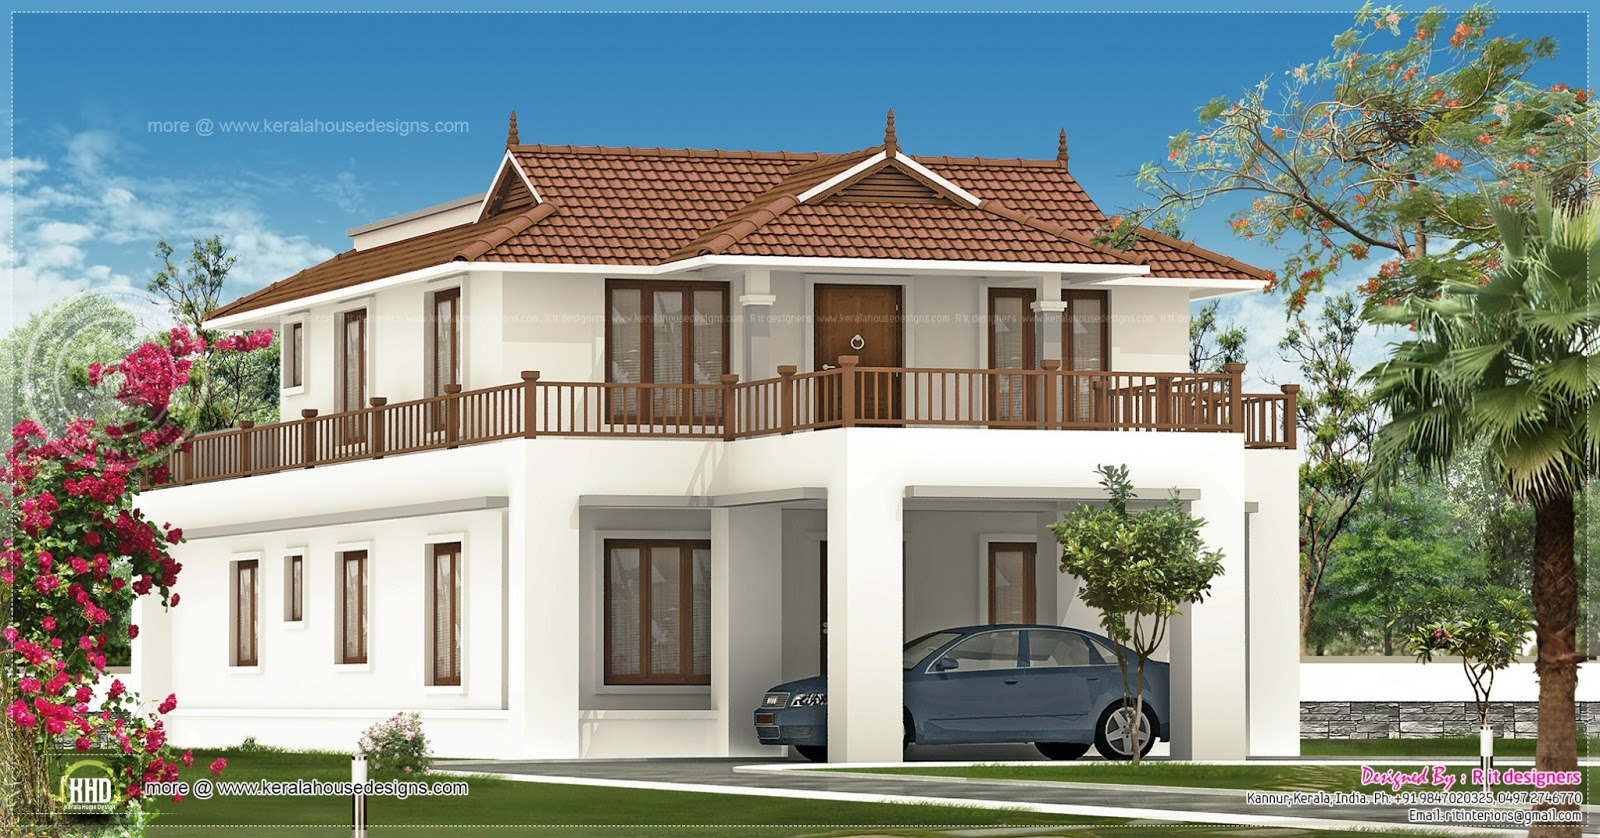 2820 square feet house exterior design home kerala plans for Design exterior of home